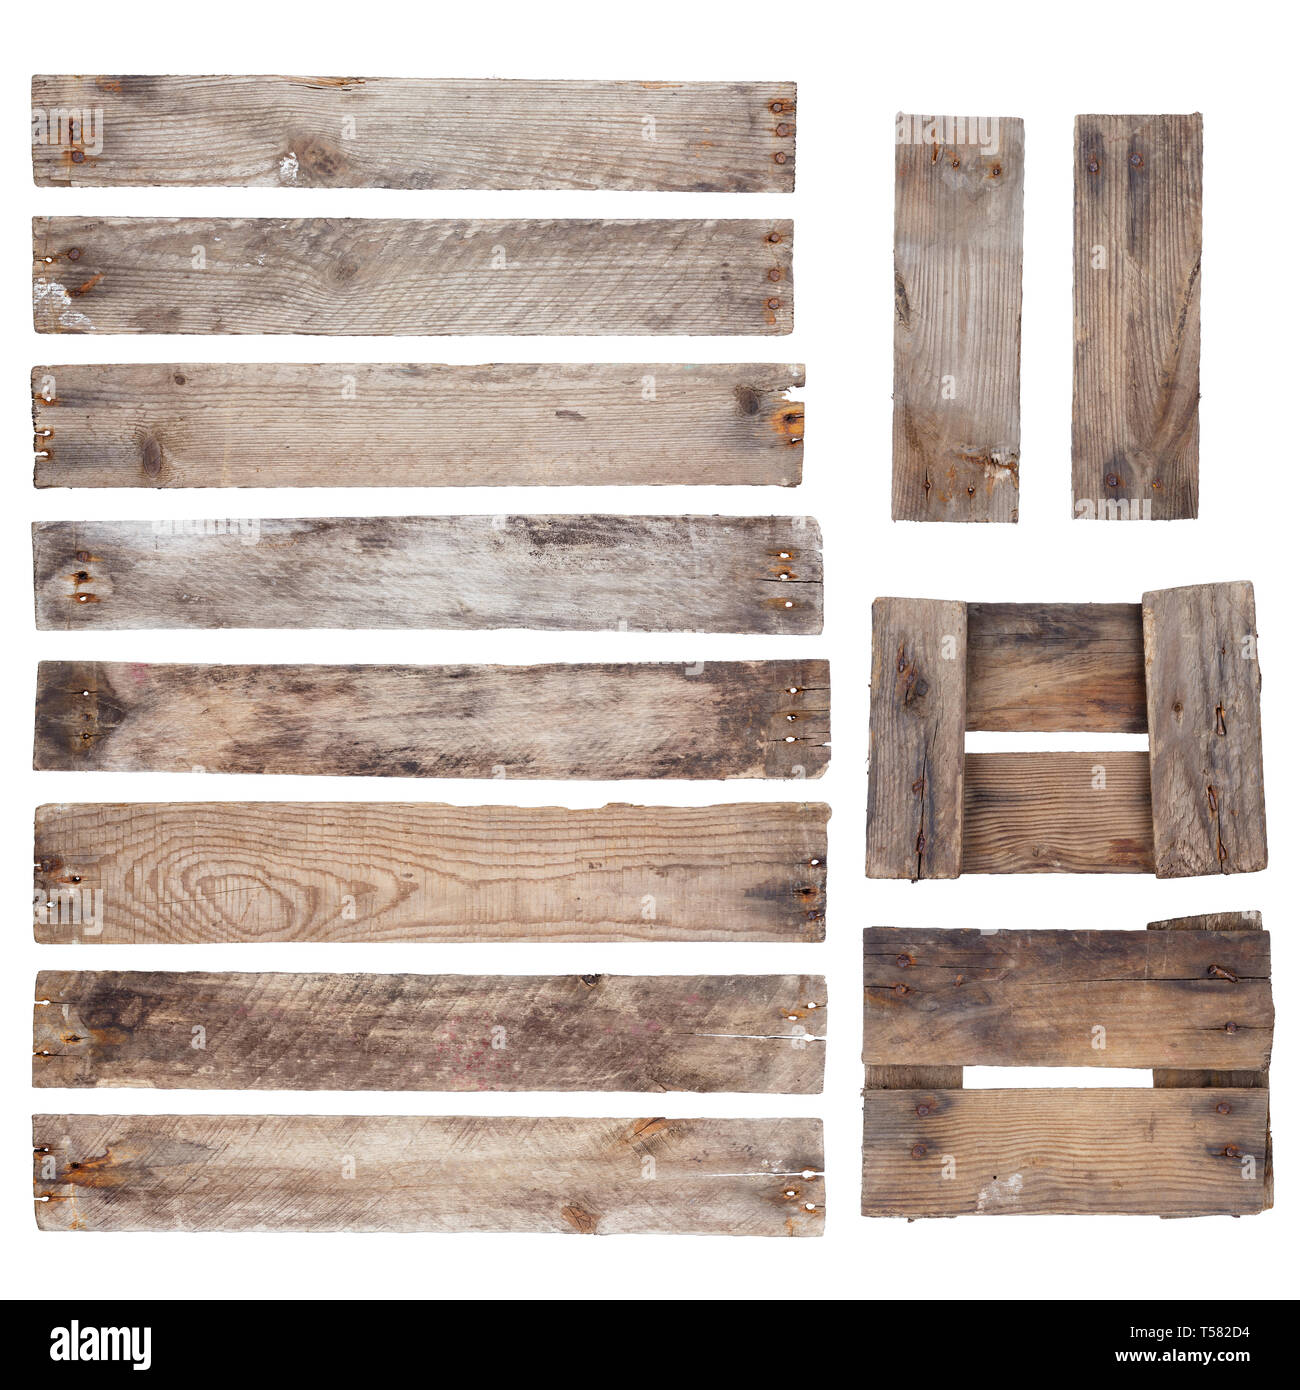 Weathered old wooden planks with rustic nails isolated on white background - Stock Image